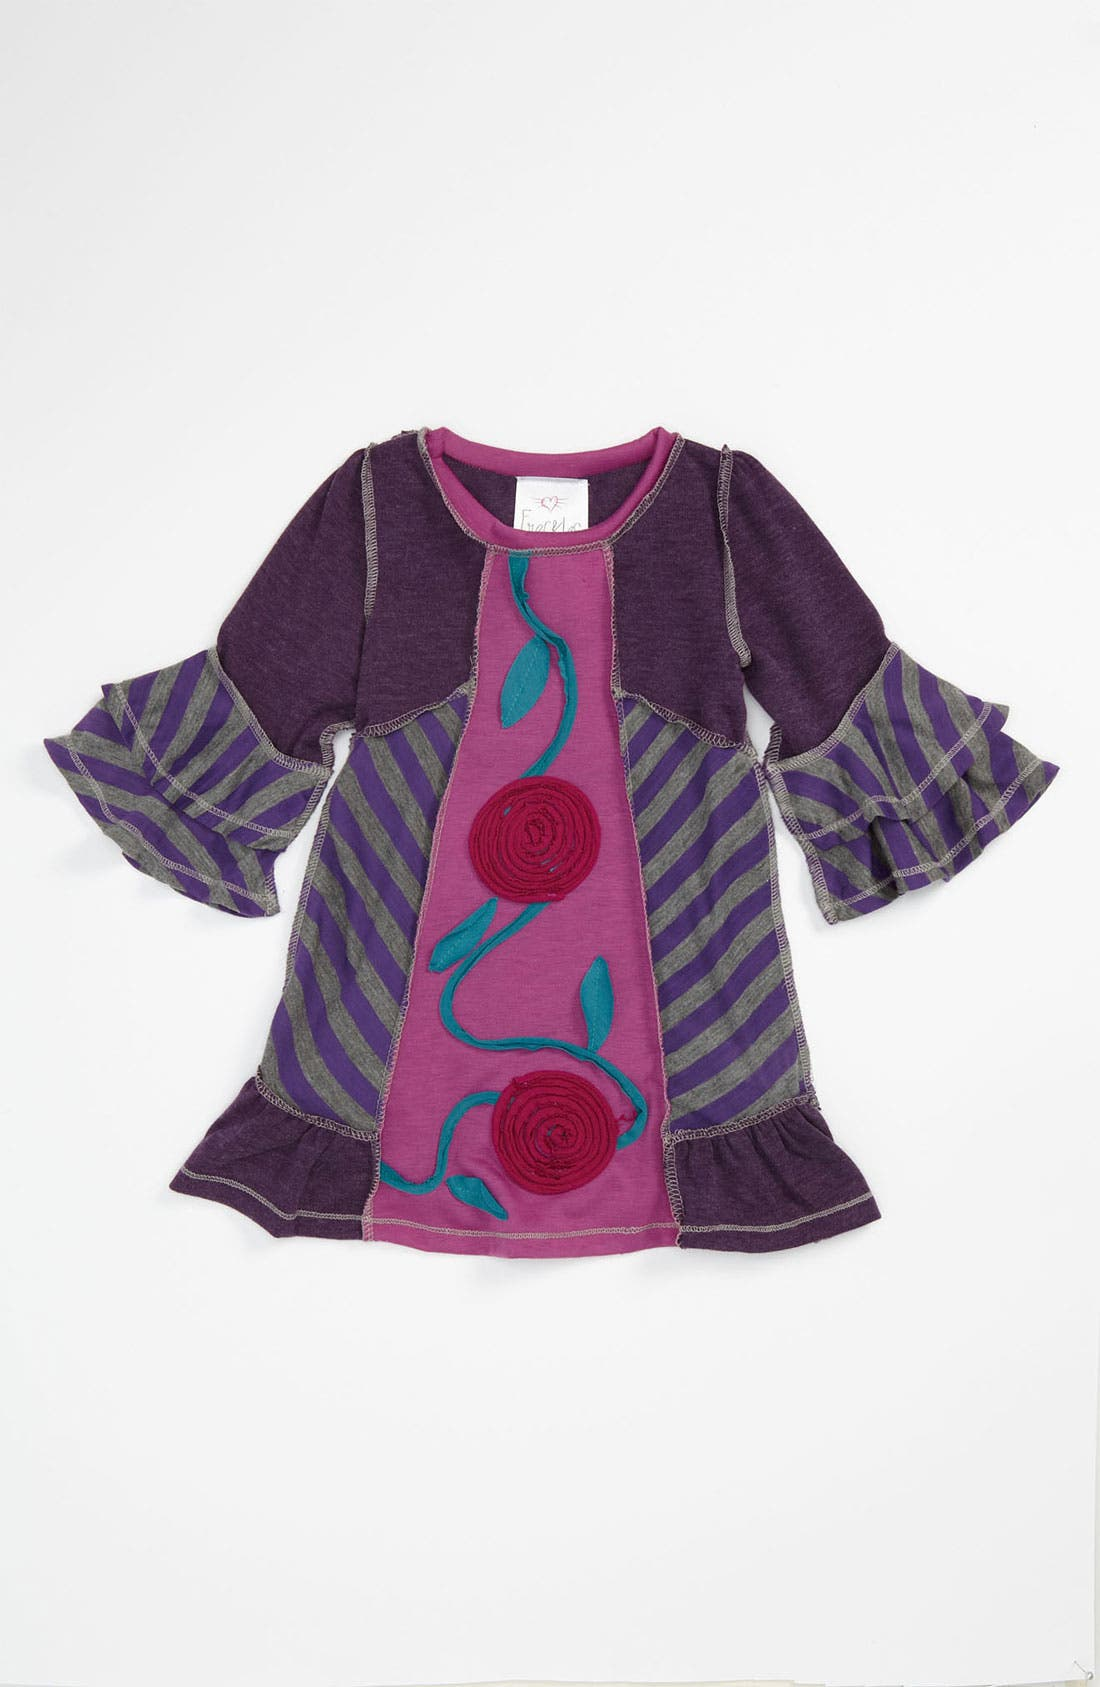 Main Image - Freckles & Kitty Patchwork Dress (Toddler)